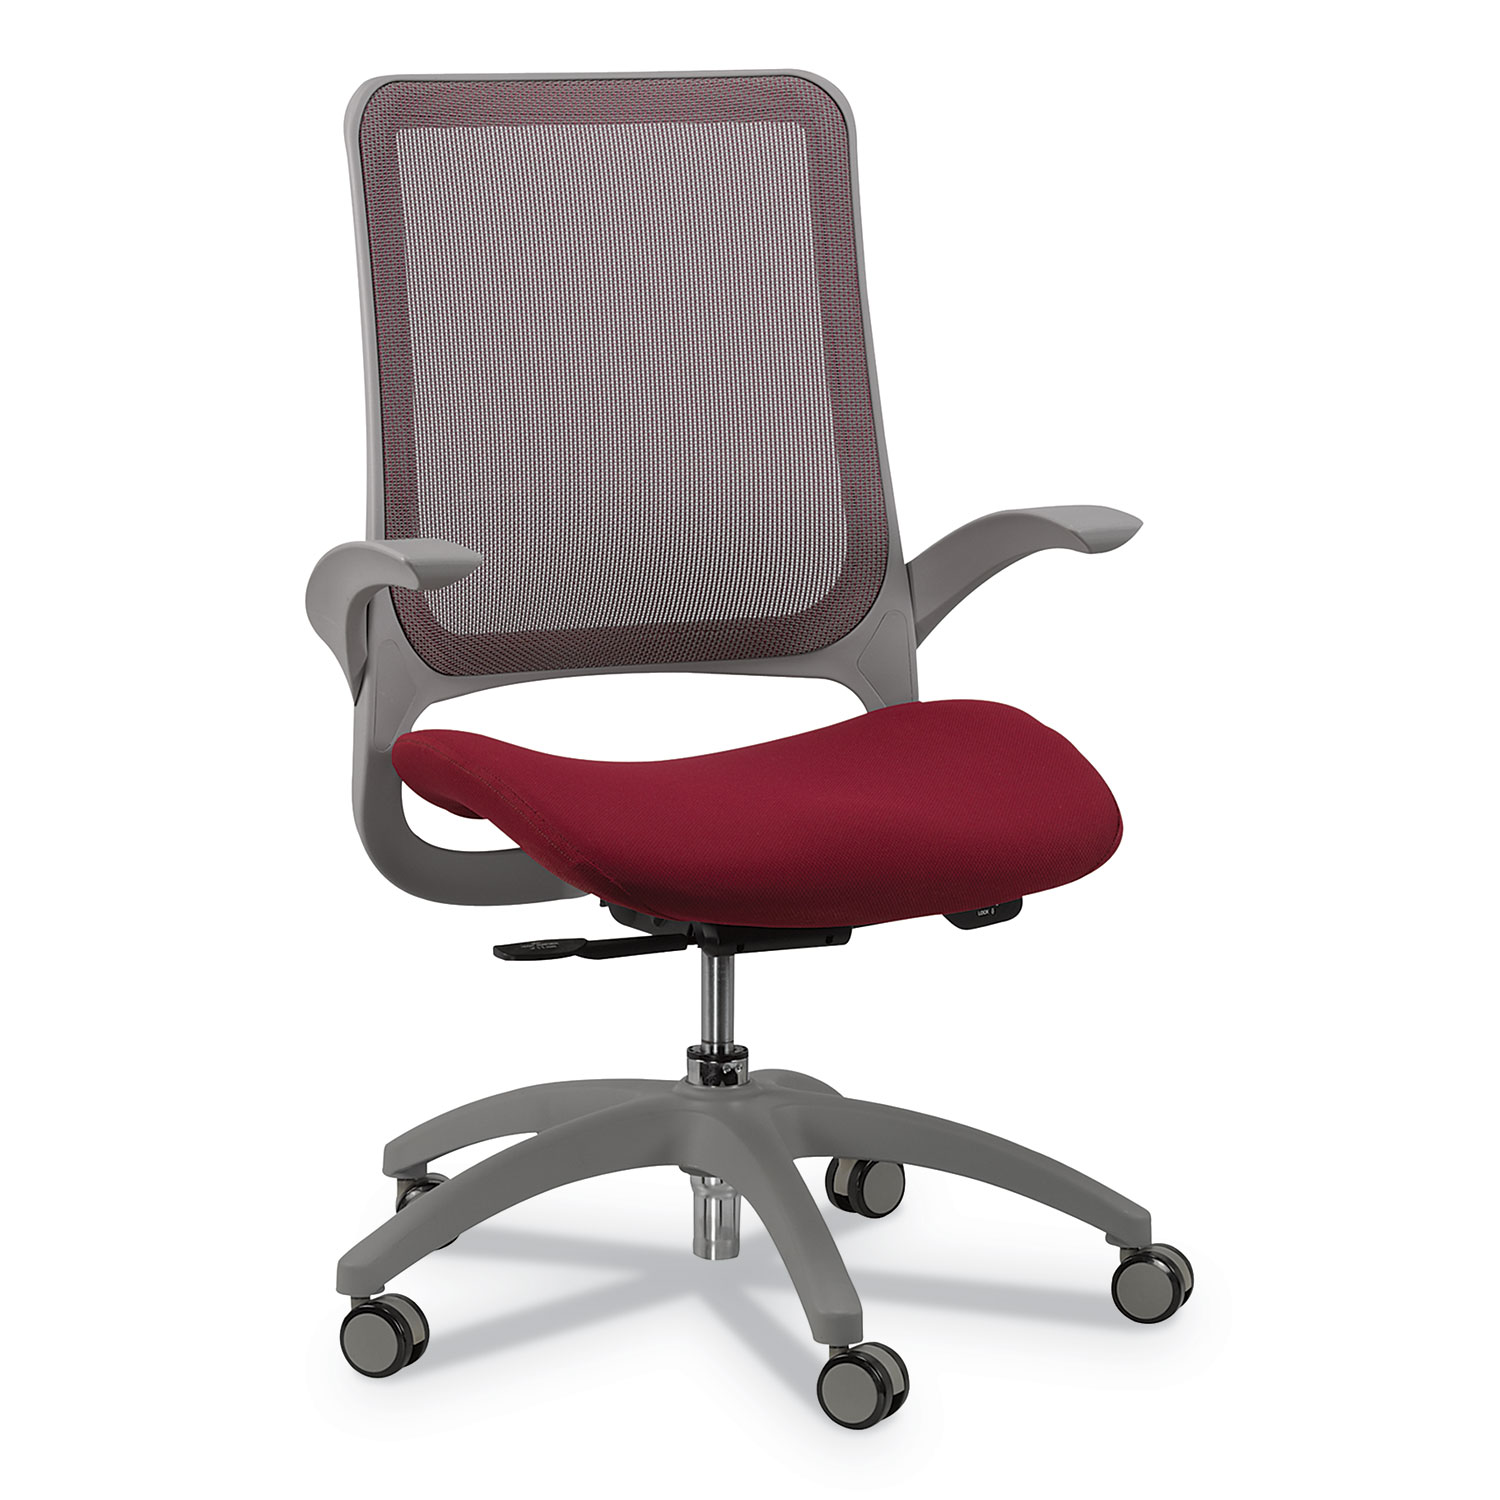 Fabulous Hawk Mesh Back Chair Supports Up To 250 Lbs Burgundy Seat Black Back Black Base Dailytribune Chair Design For Home Dailytribuneorg